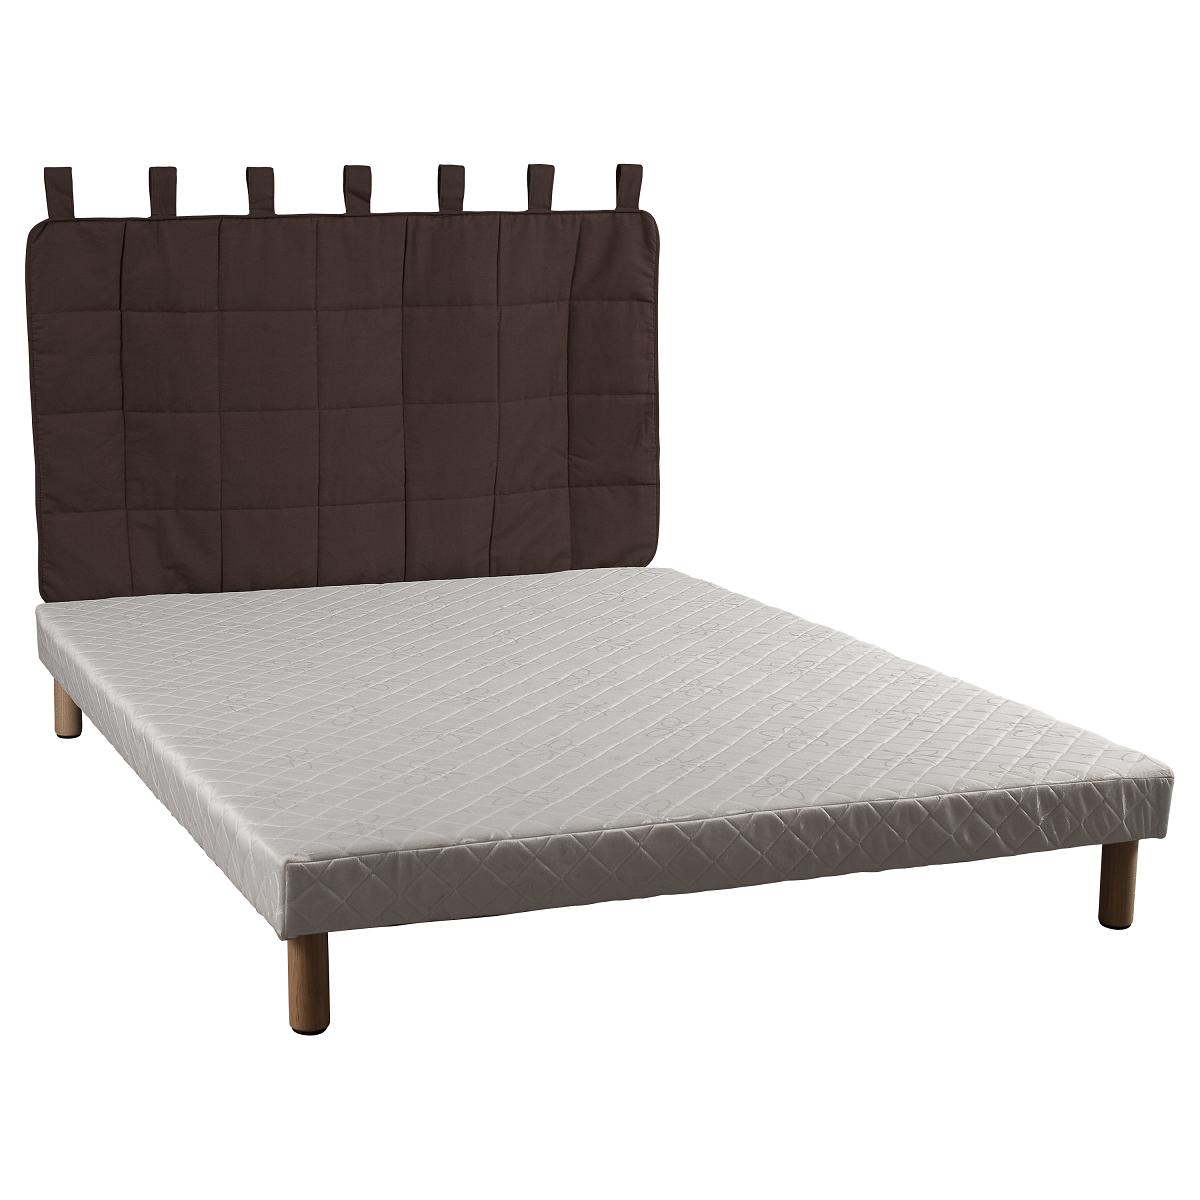 someo t te de lit en tissu matelass chocolat 160. Black Bedroom Furniture Sets. Home Design Ideas